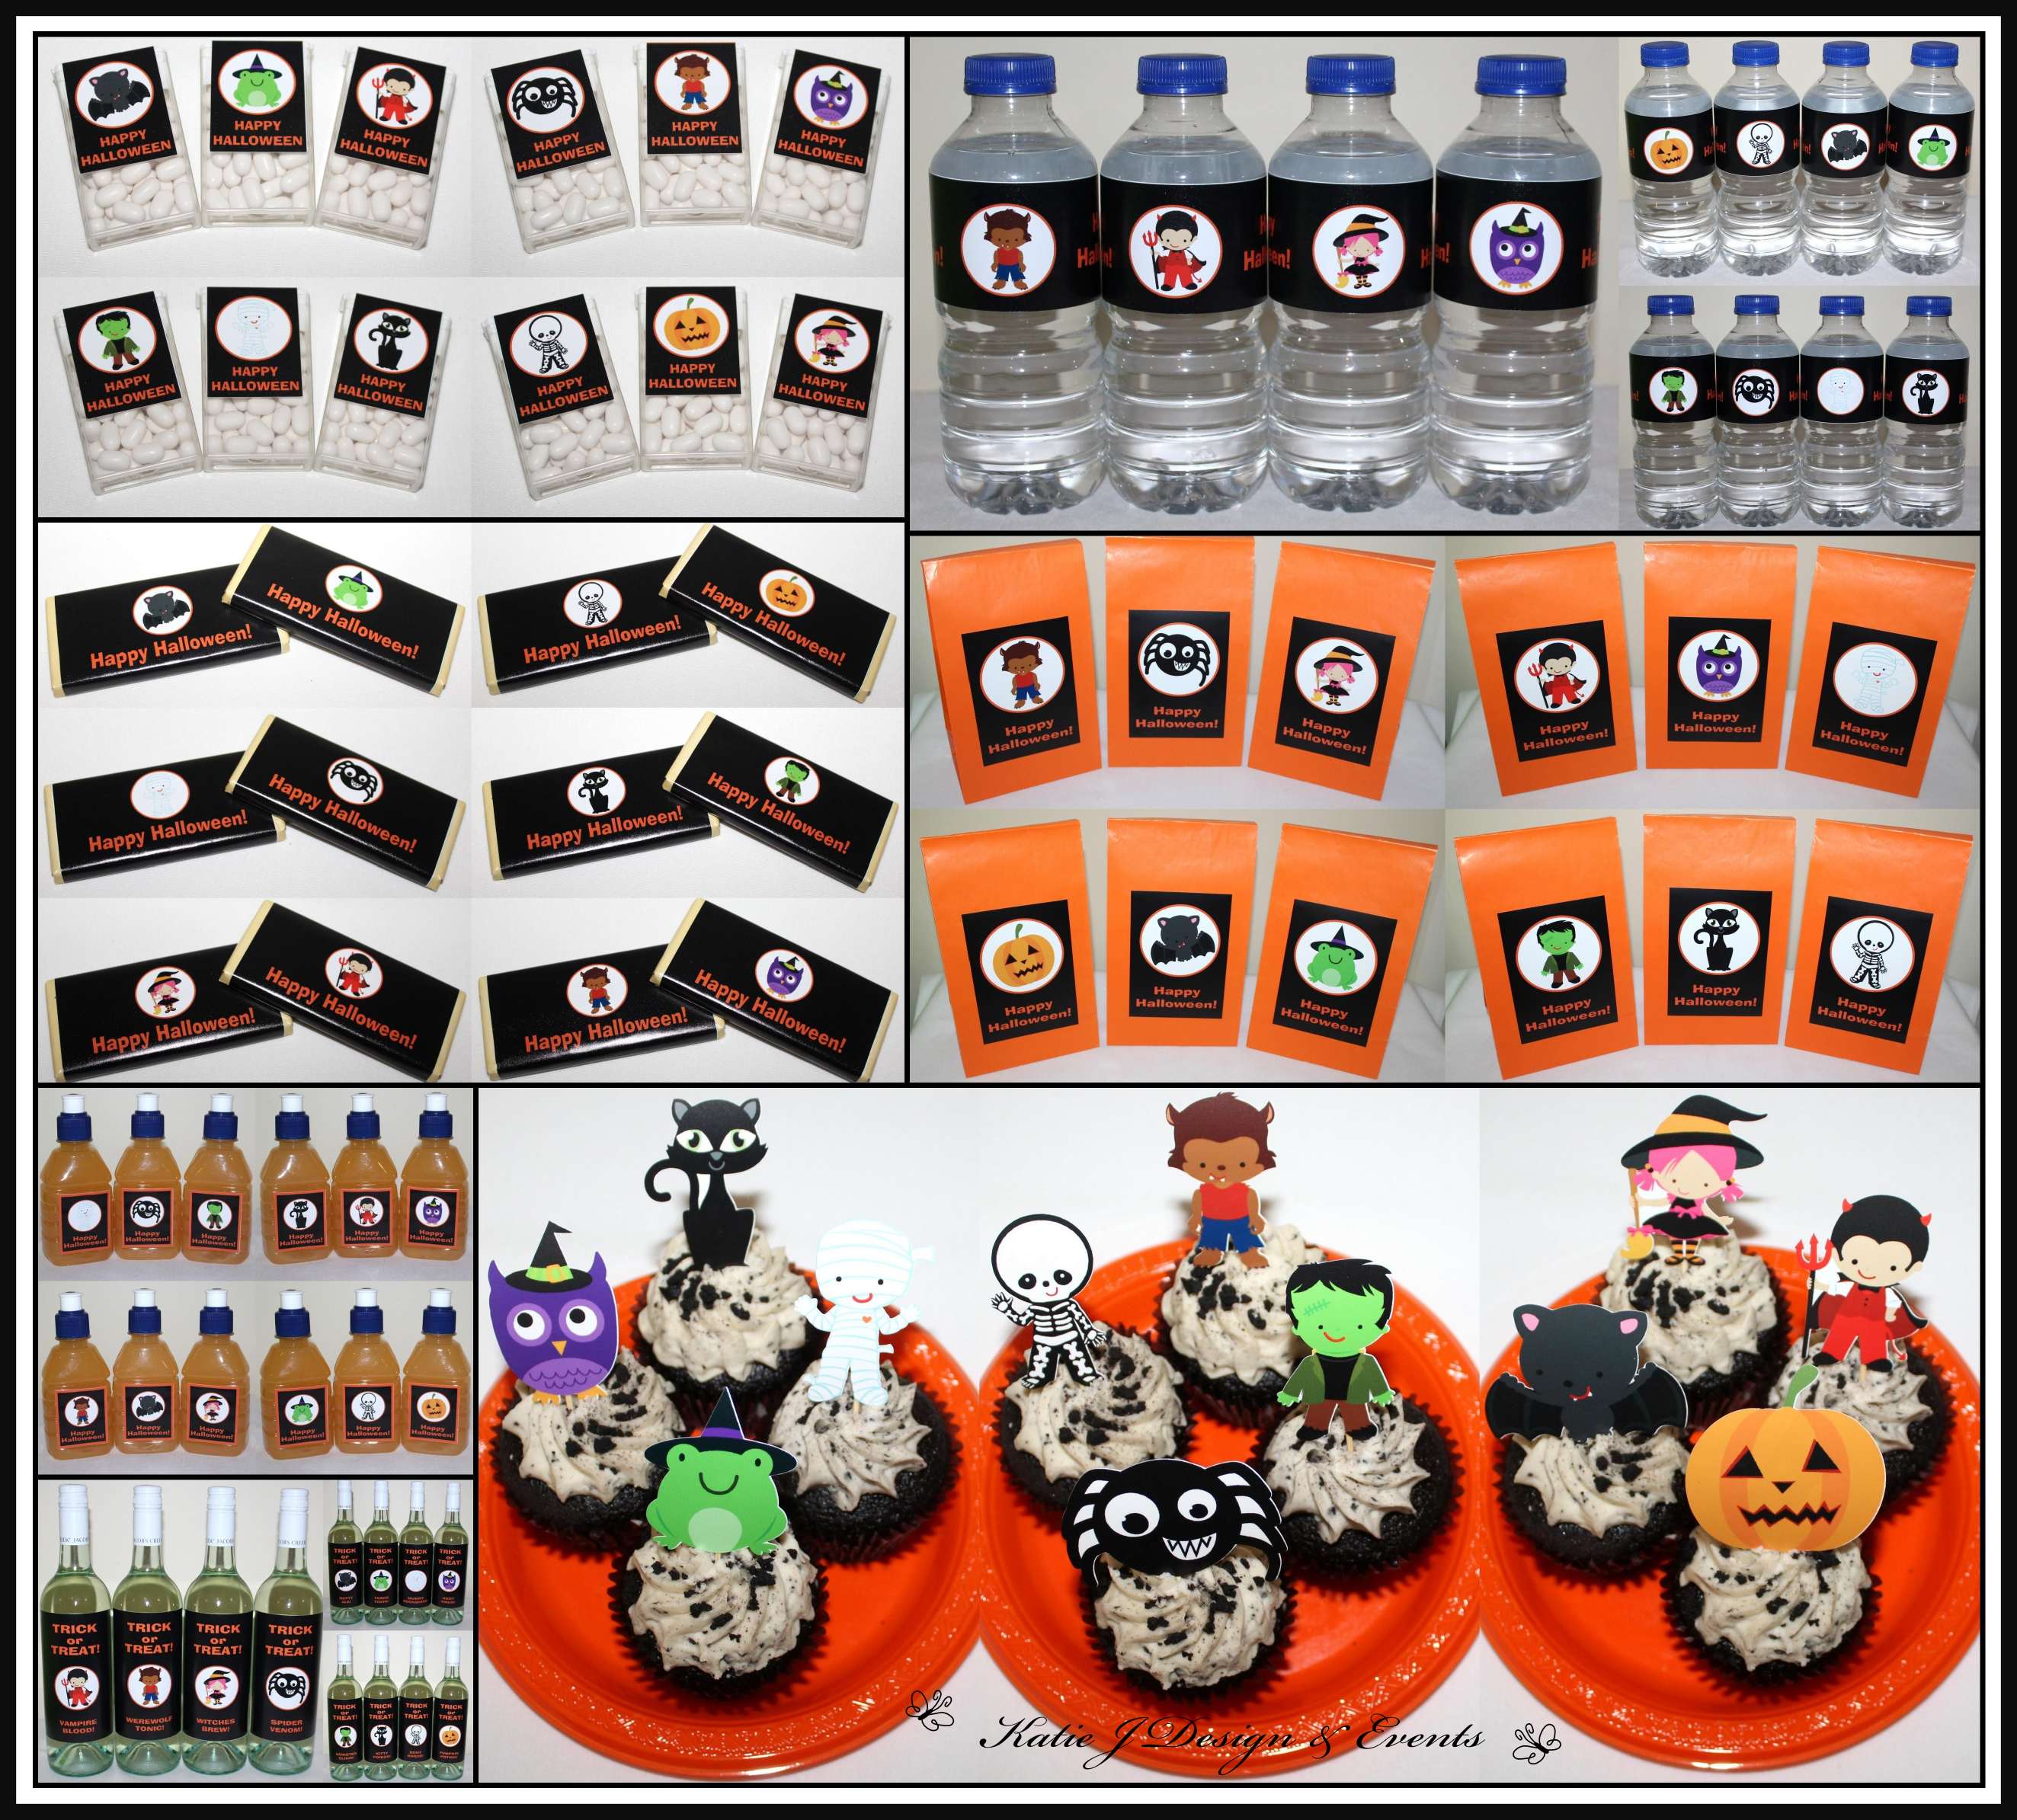 Halloween Party Decorations Supplies Shop Online Australia Banners Bunting  Wall Display Cupcake Toppers Chocolate Wrappers Juice